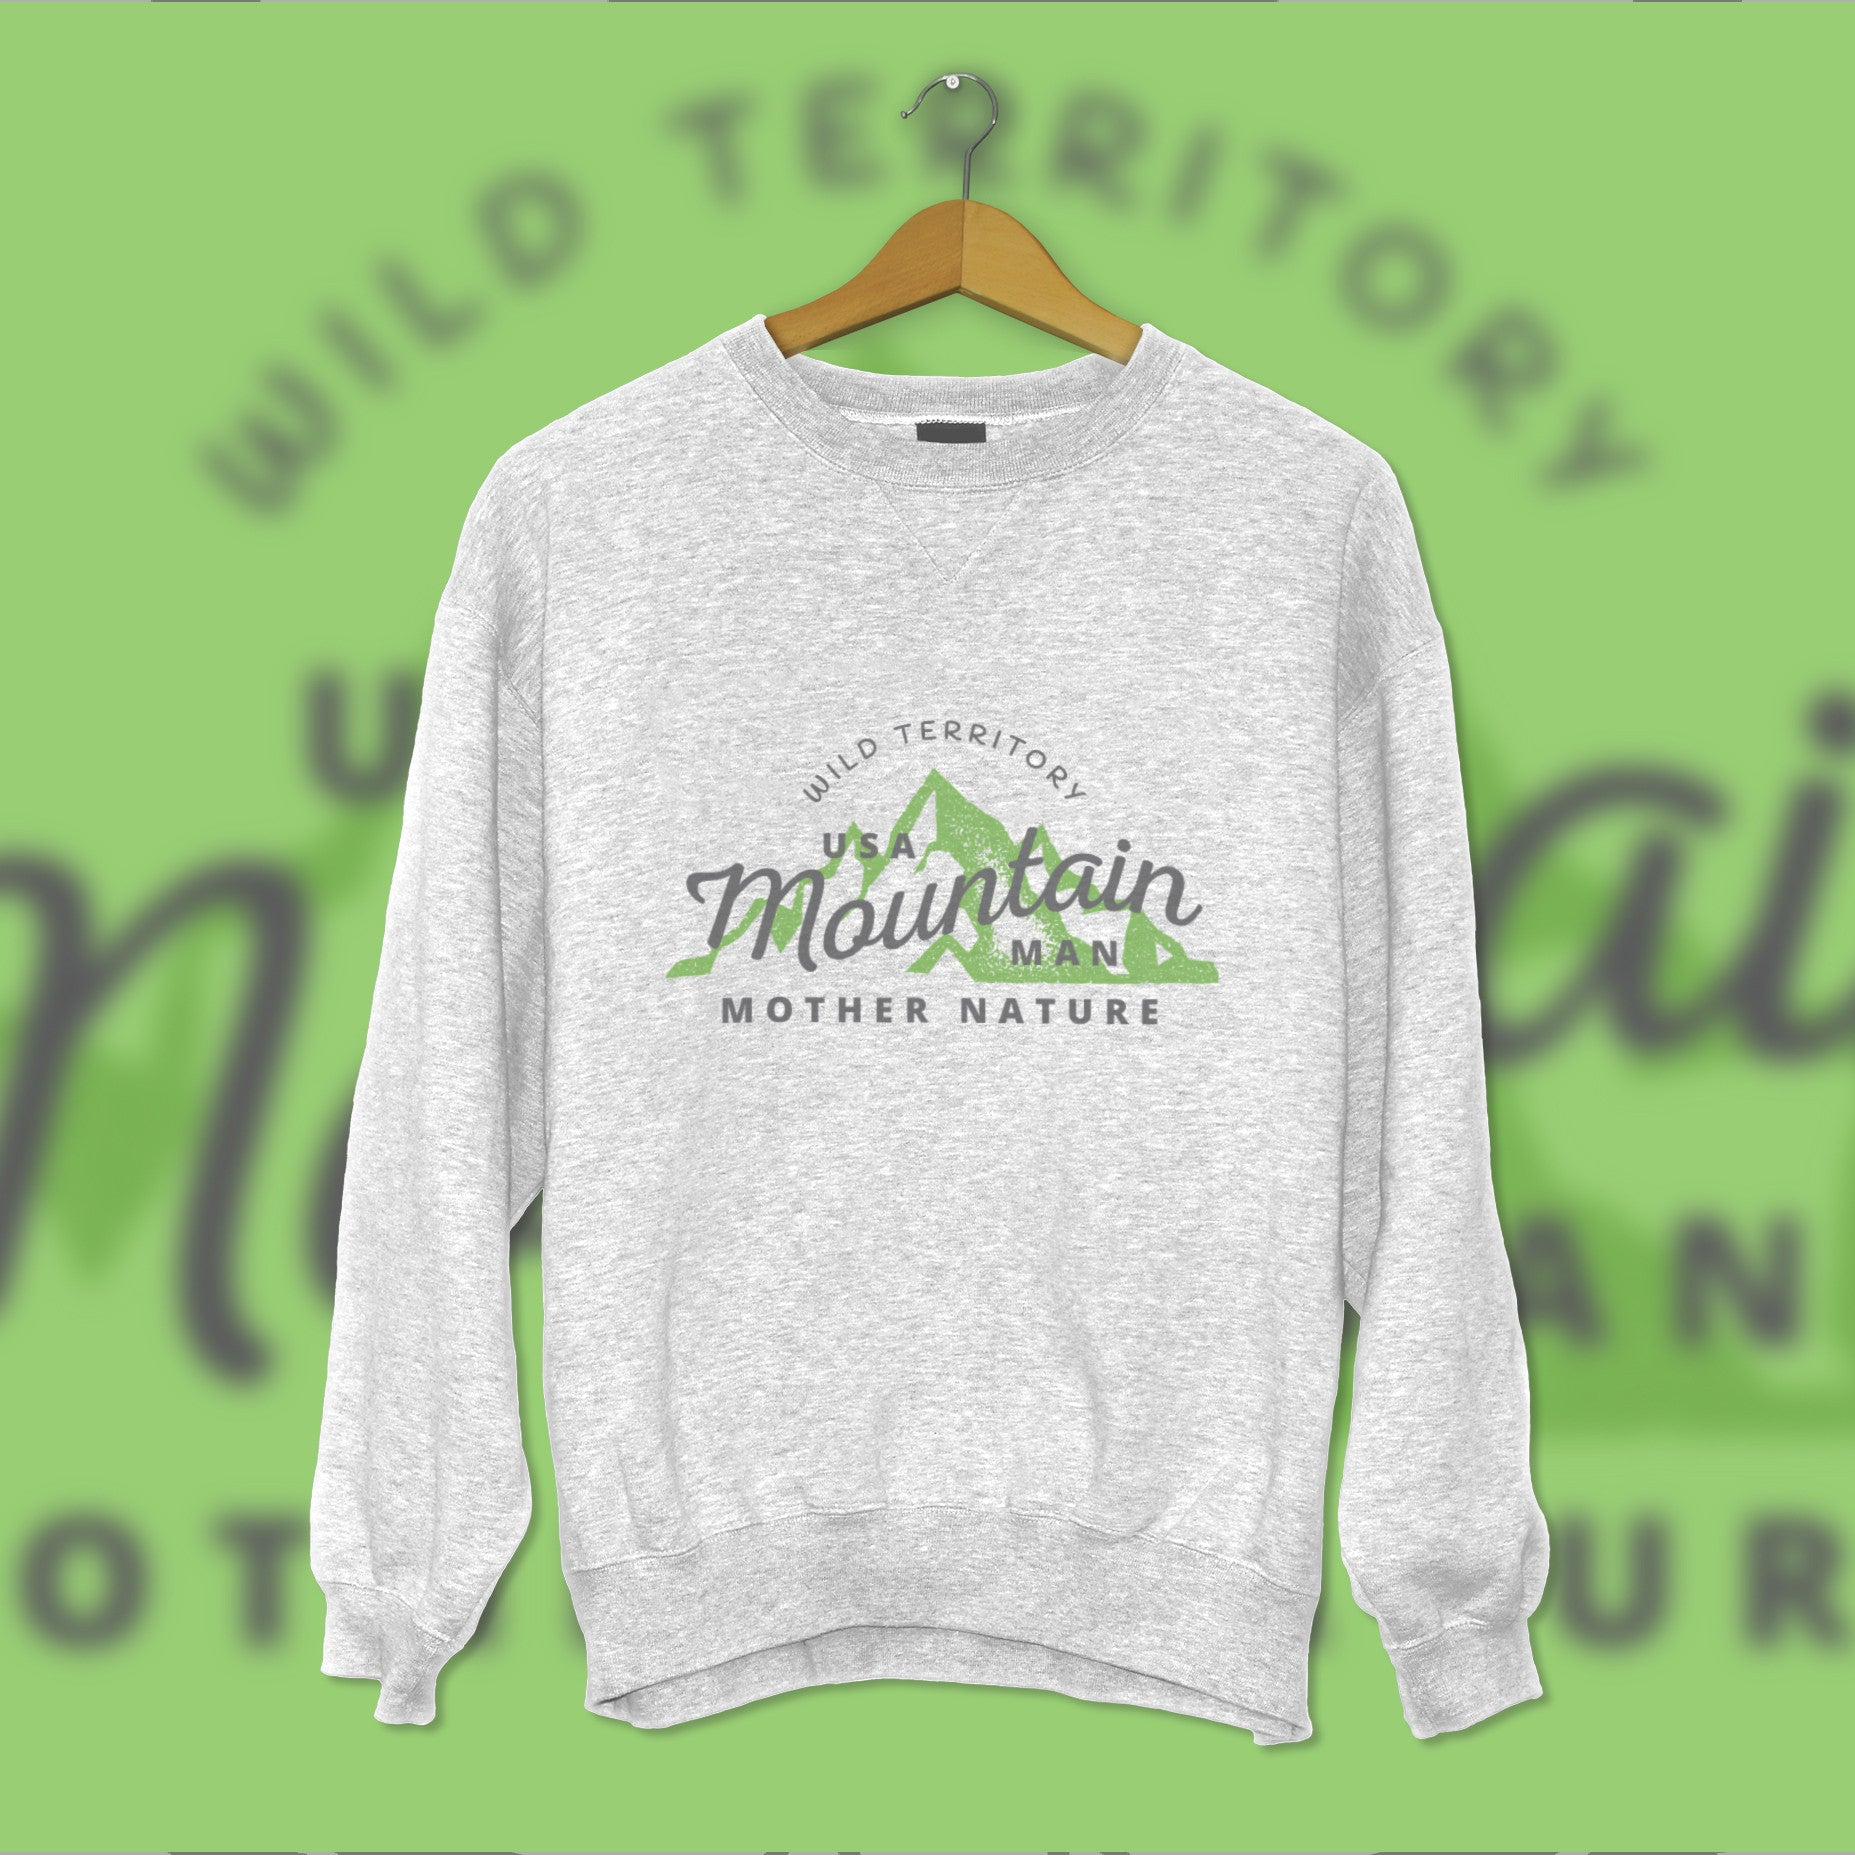 Creative Personalised Printed Designed White Sweatshirts Print Your Logo, Artwork, Photos Or Designs Perfect for a Birthday, Christmas Gift For The Home, Kitchen, Living Room, Bedroom, Office, Businesses, Restaurants, Pubs, Cafes, Bars And Parties Perfect Gift For Adults And Children